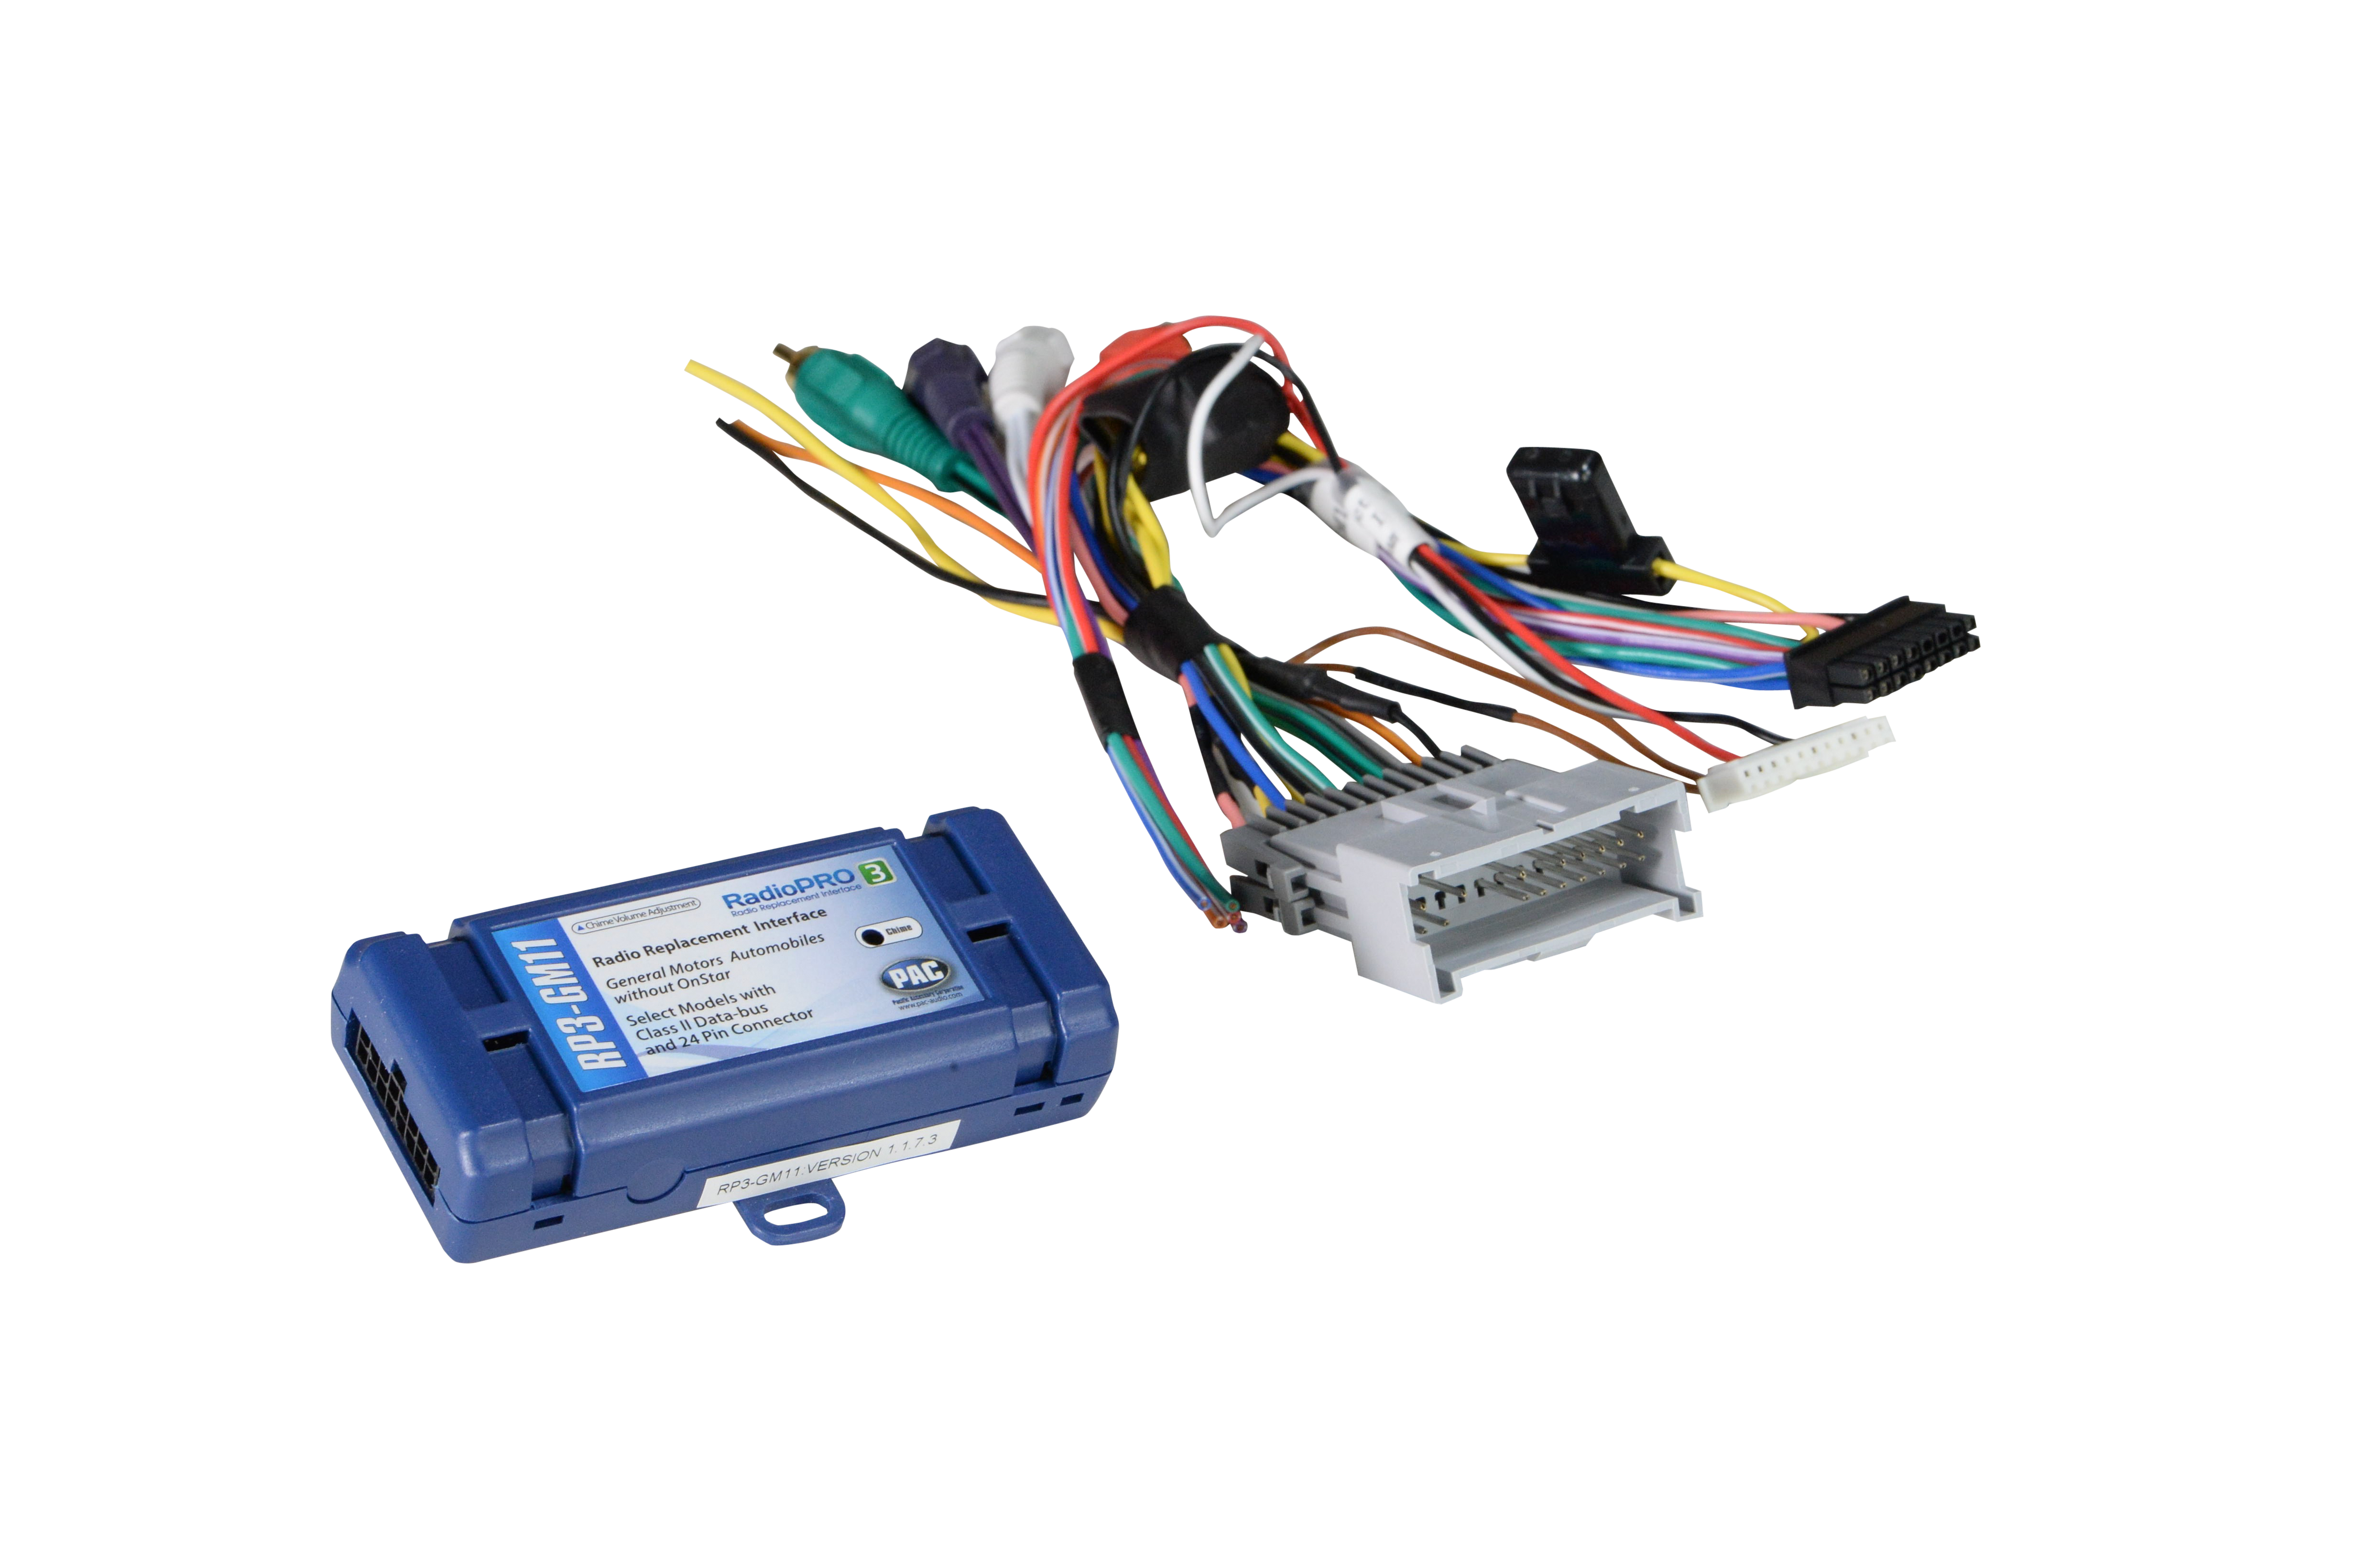 gm radio chime interface wiring diagram radiopro3 interface for select gm class ii vehicles pac  radiopro3 interface for select gm class